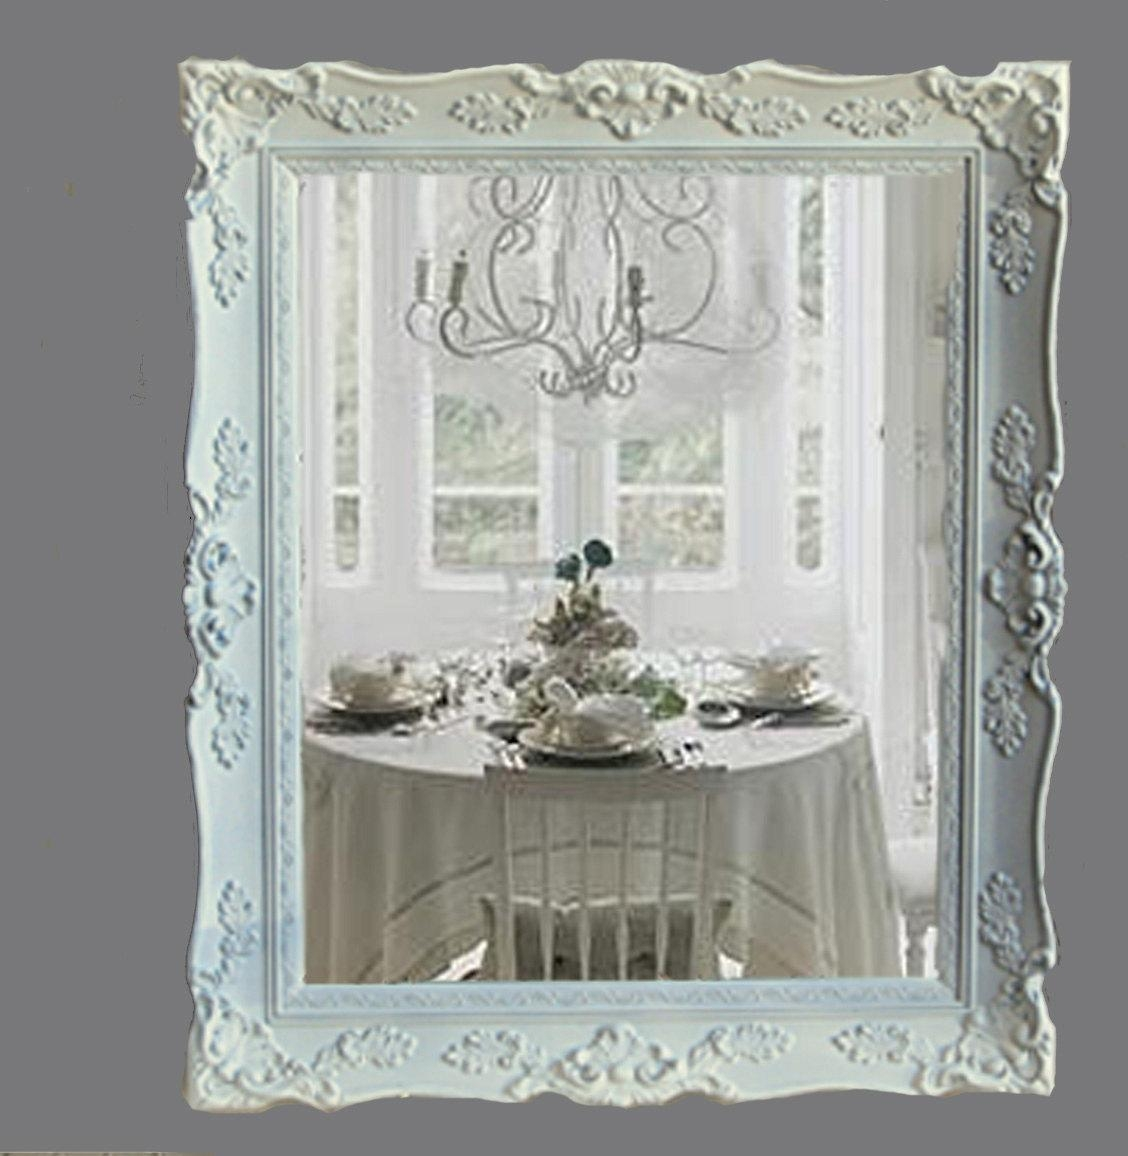 Shabby Chic Mirrors Images – Reverse Search Within White Shabby Chic Mirror (Image 18 of 20)